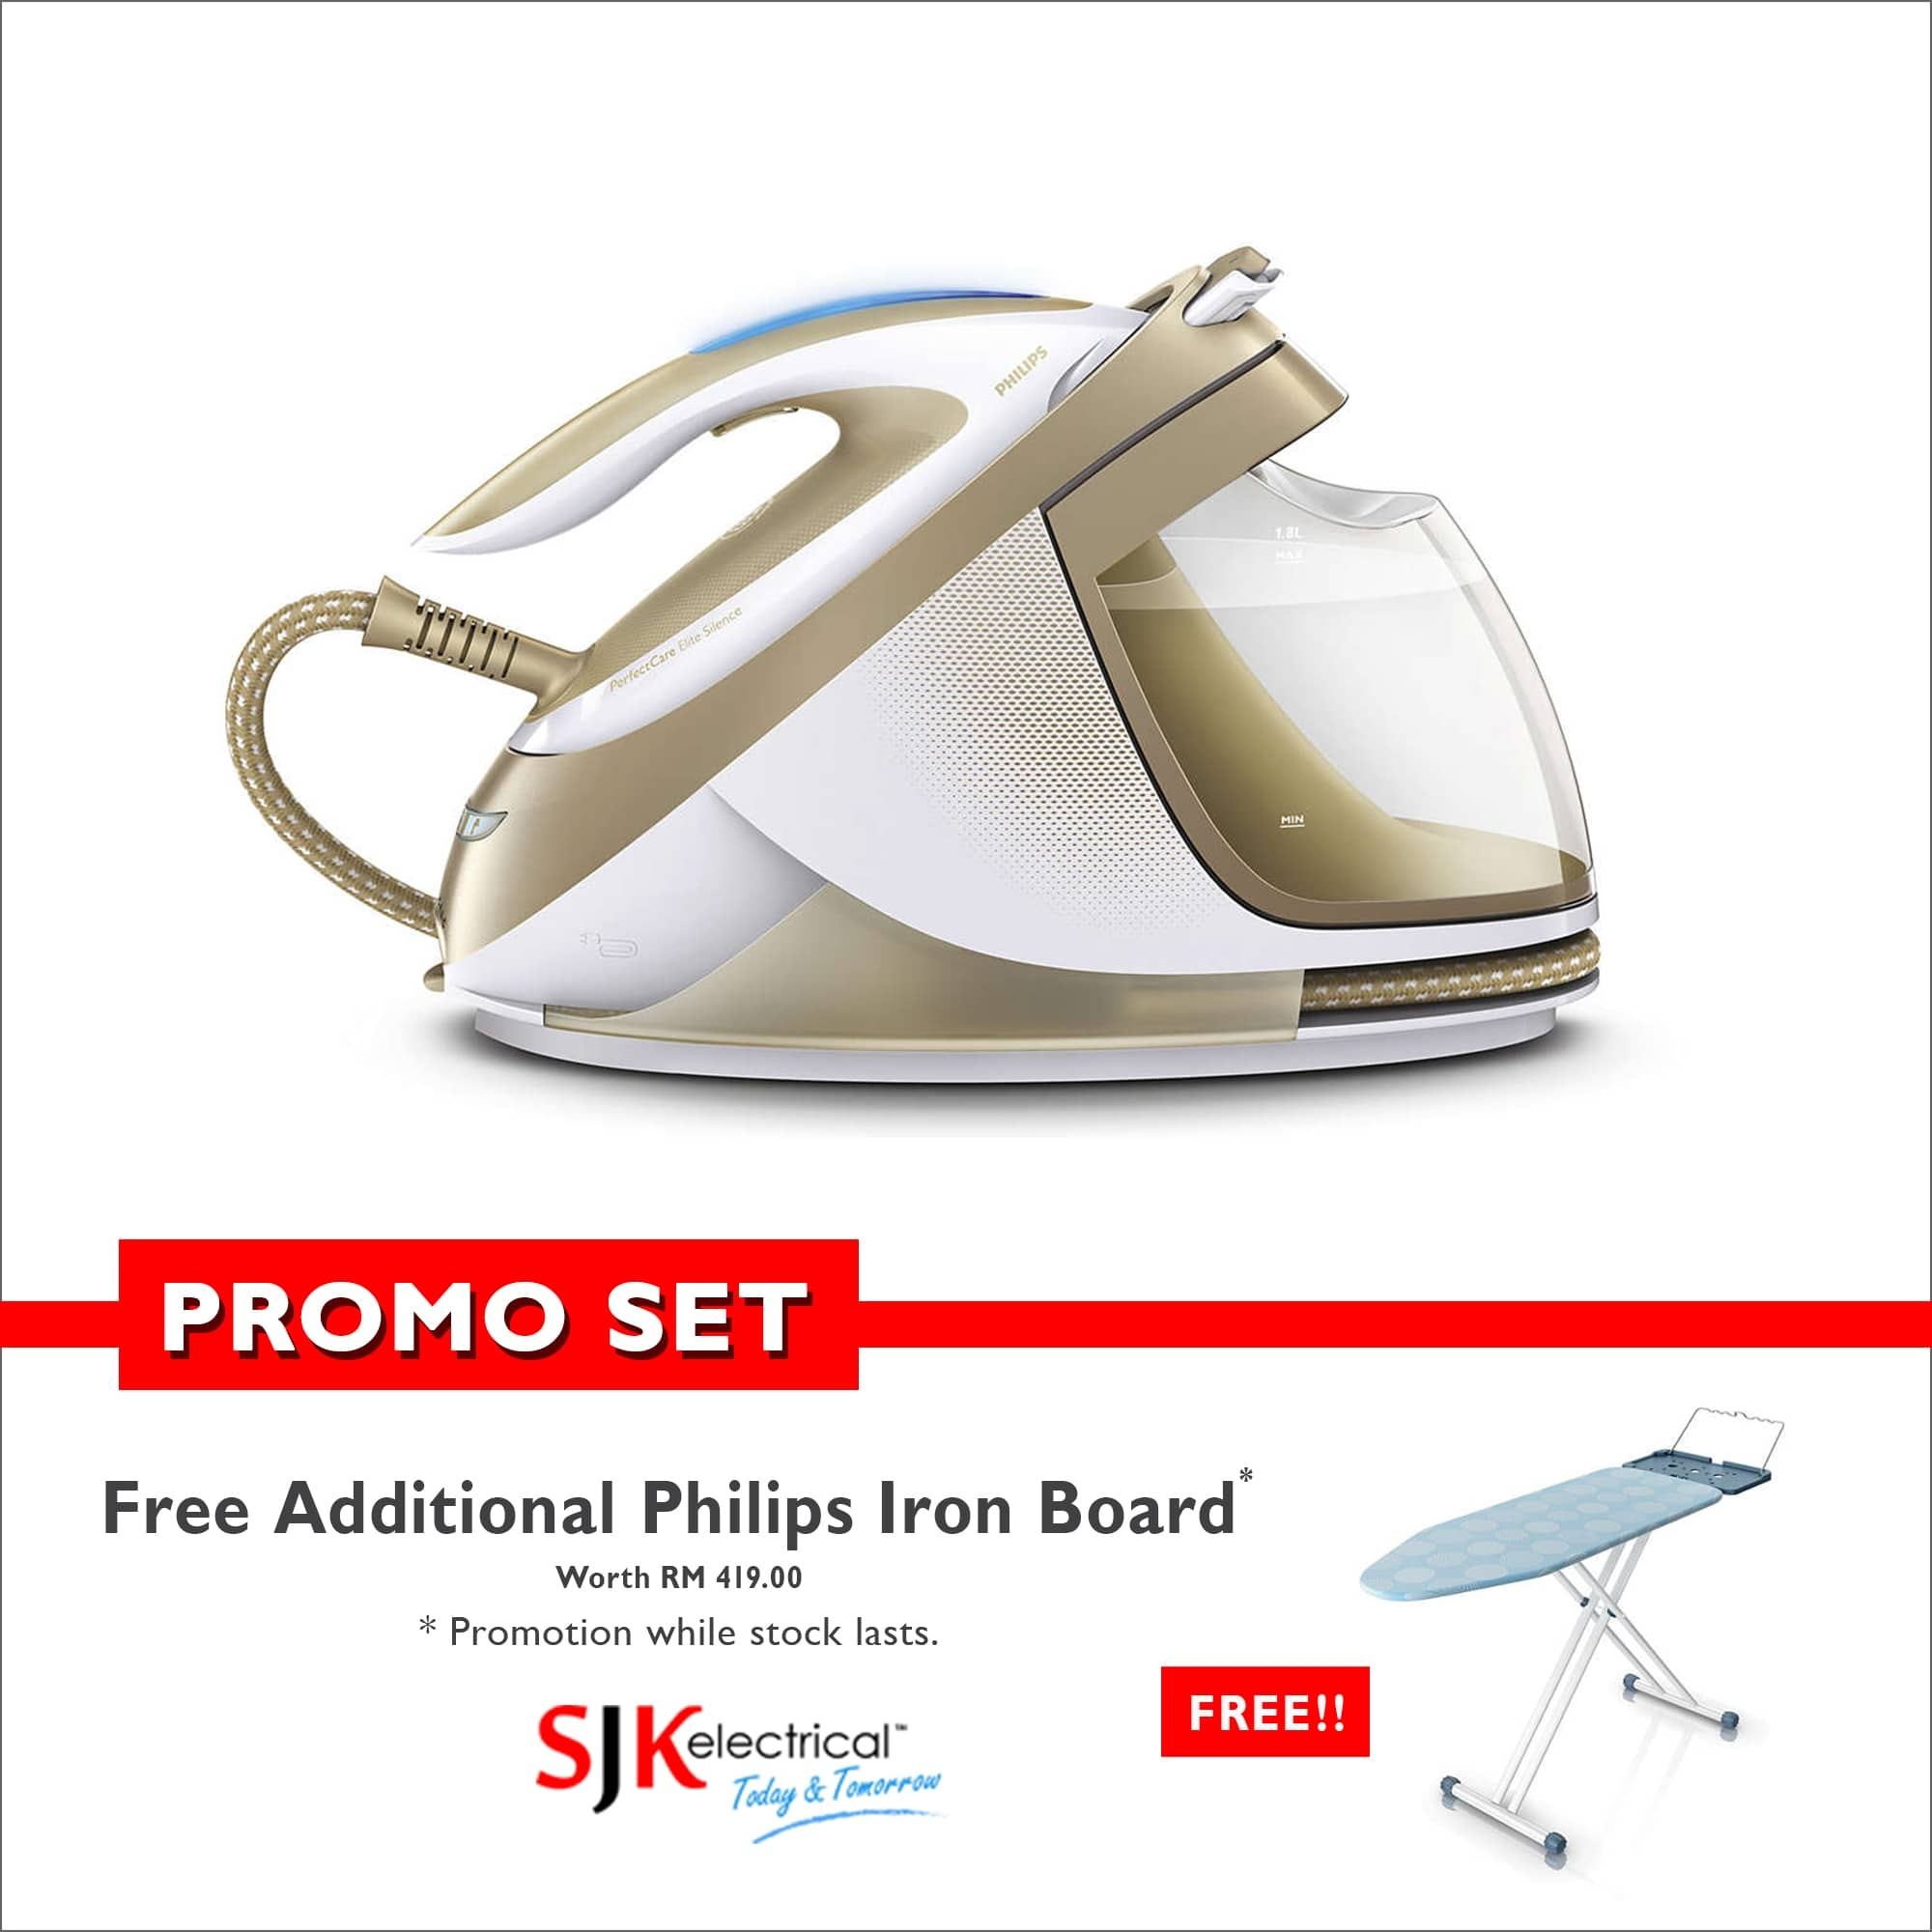 Steam Iron Philip Price Harga In Malaysia Philips Gc 1418 Setrika Uap Seterika Generator 9642 490g Boost